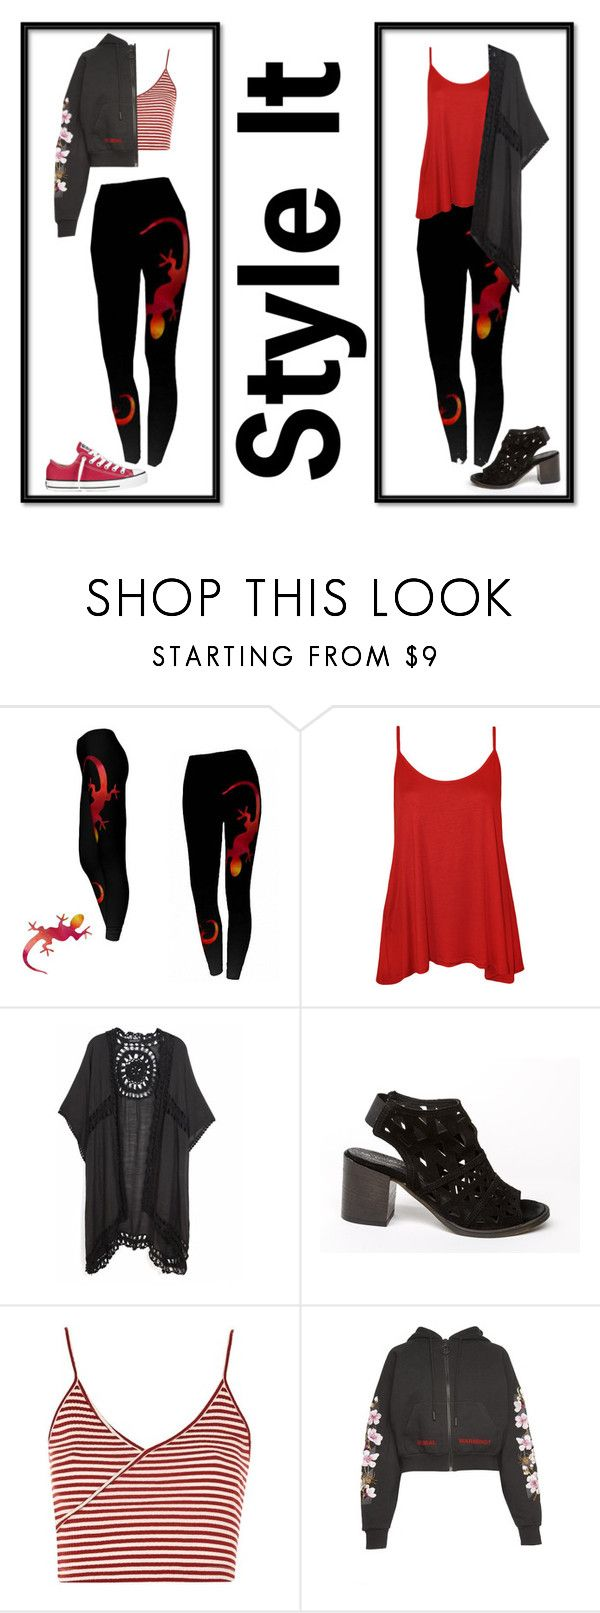 """""""Lizard Leggings by Whimzingers"""" by whimzingers ❤ liked on Polyvore featuring WearAll, Do Everything In Love, Topshop, Off-White, Converse, etsy, Leggings, fashionset and whimzingers"""